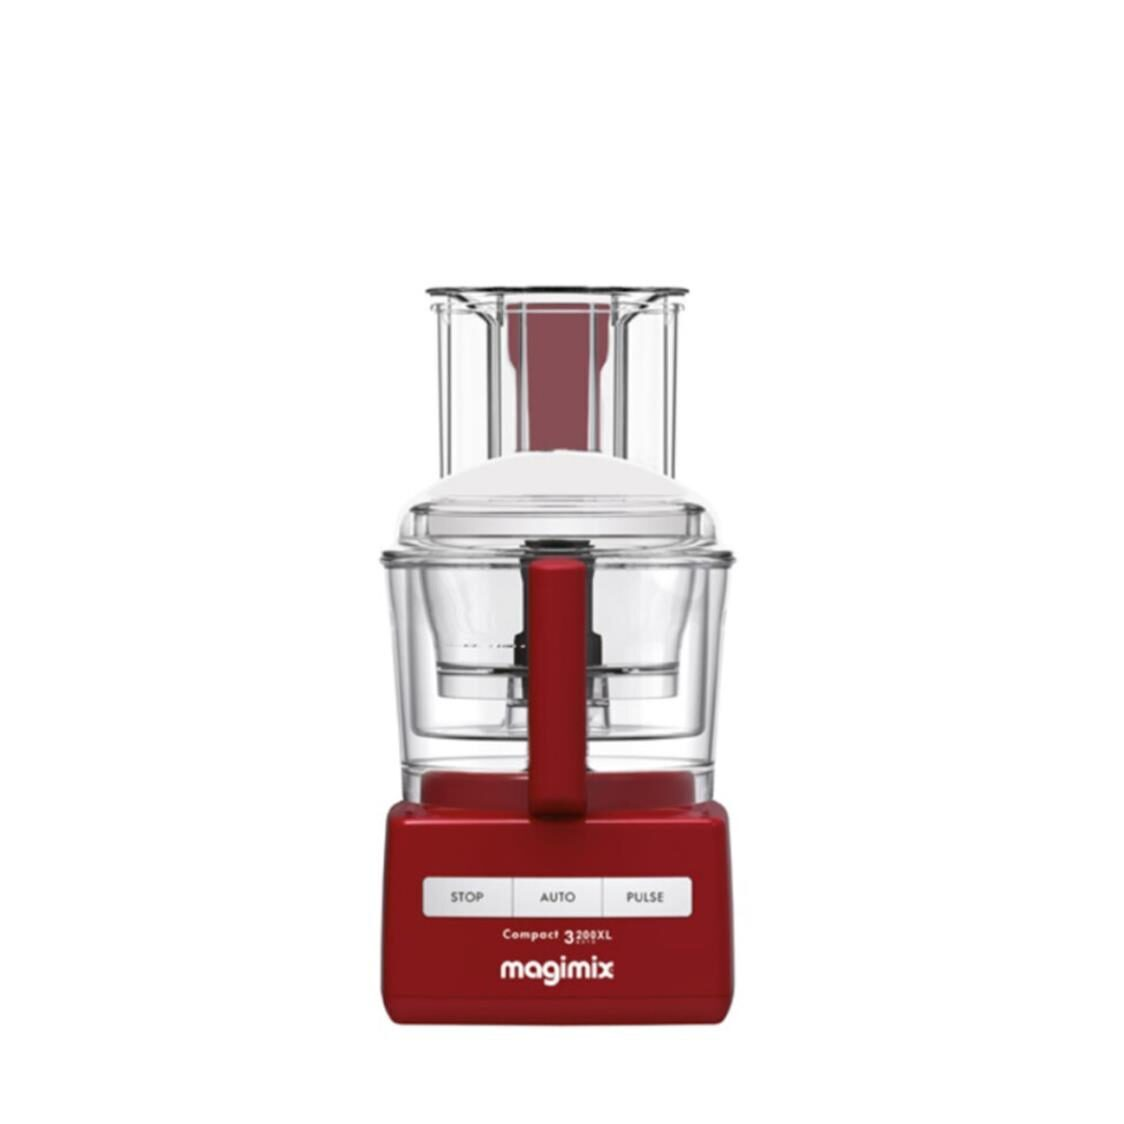 Magimix 3200XL Compact-Rouge Multifunction Food Processor